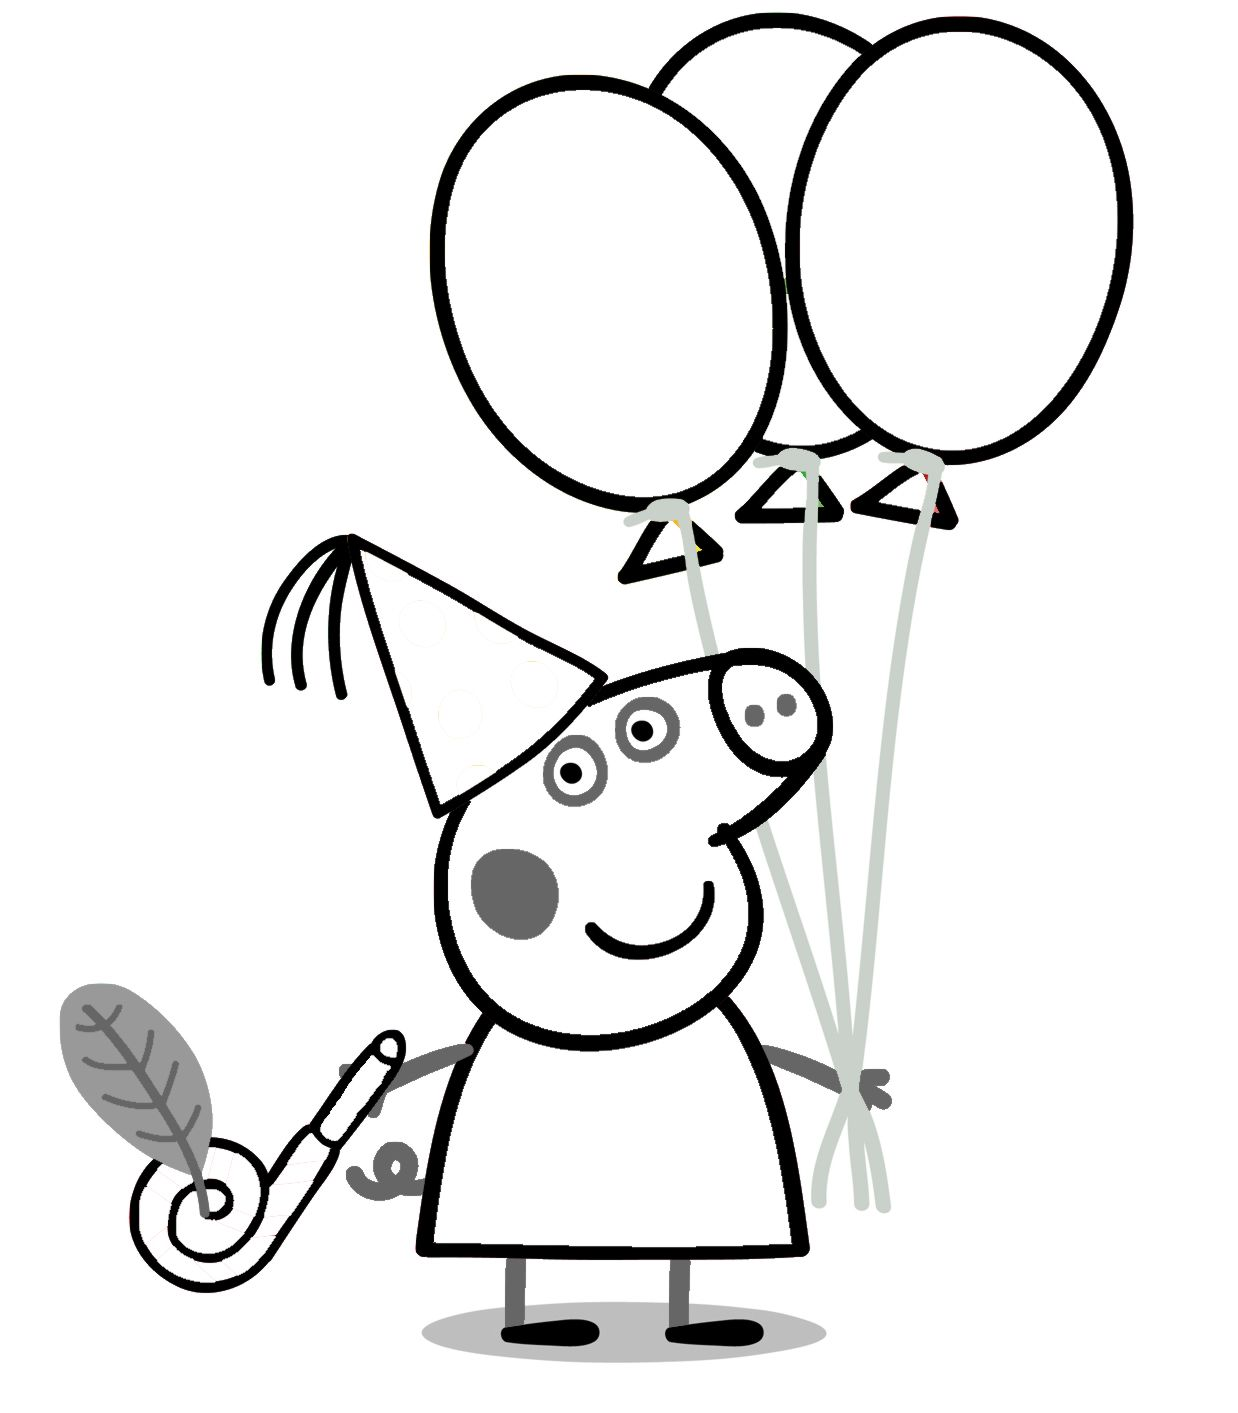 peppa pig coloring pages Google Search Educational